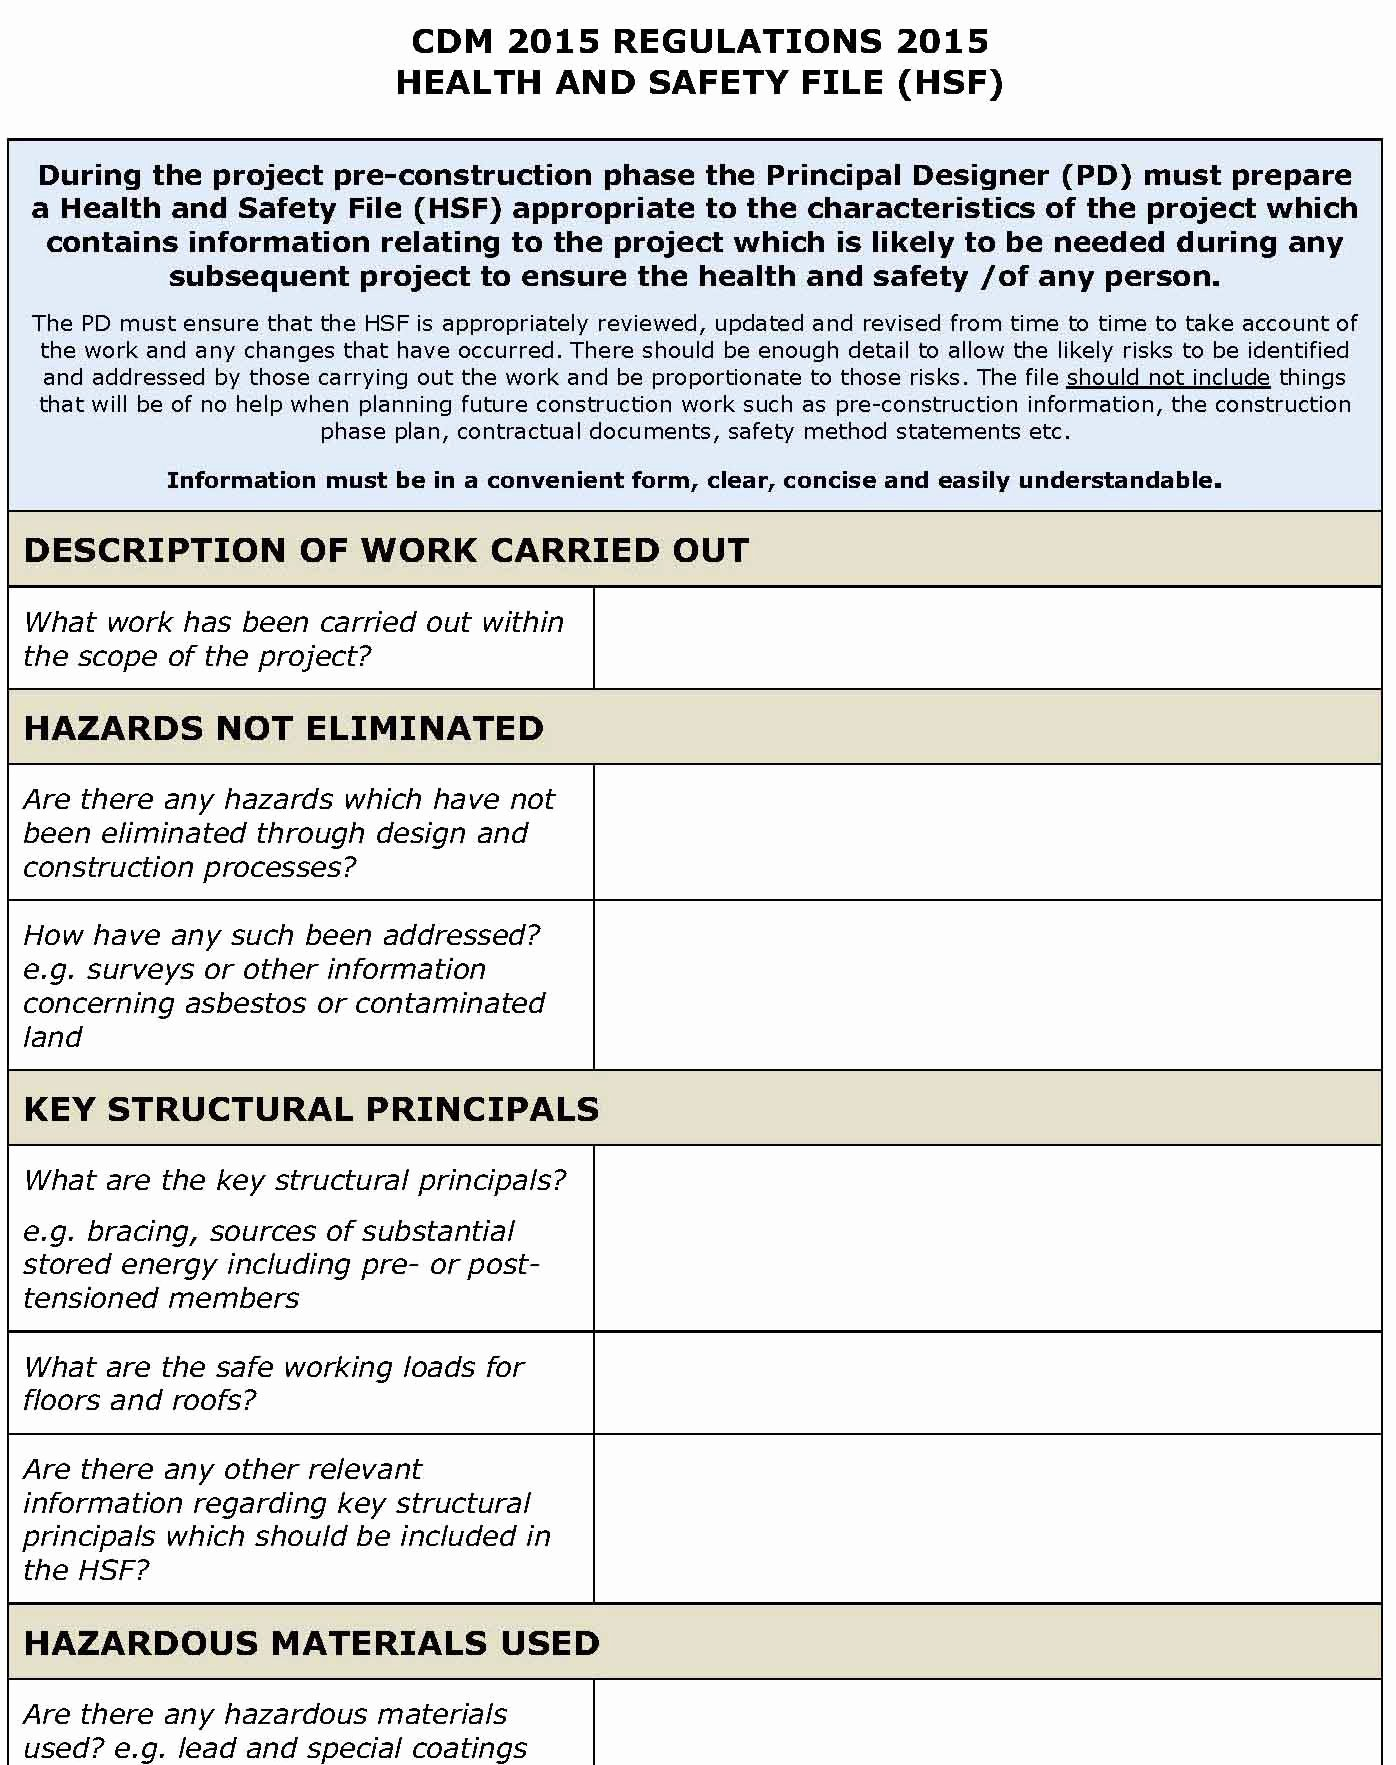 Construction Safety Plan Template New Cdm Regulations 2015 H&s File Template